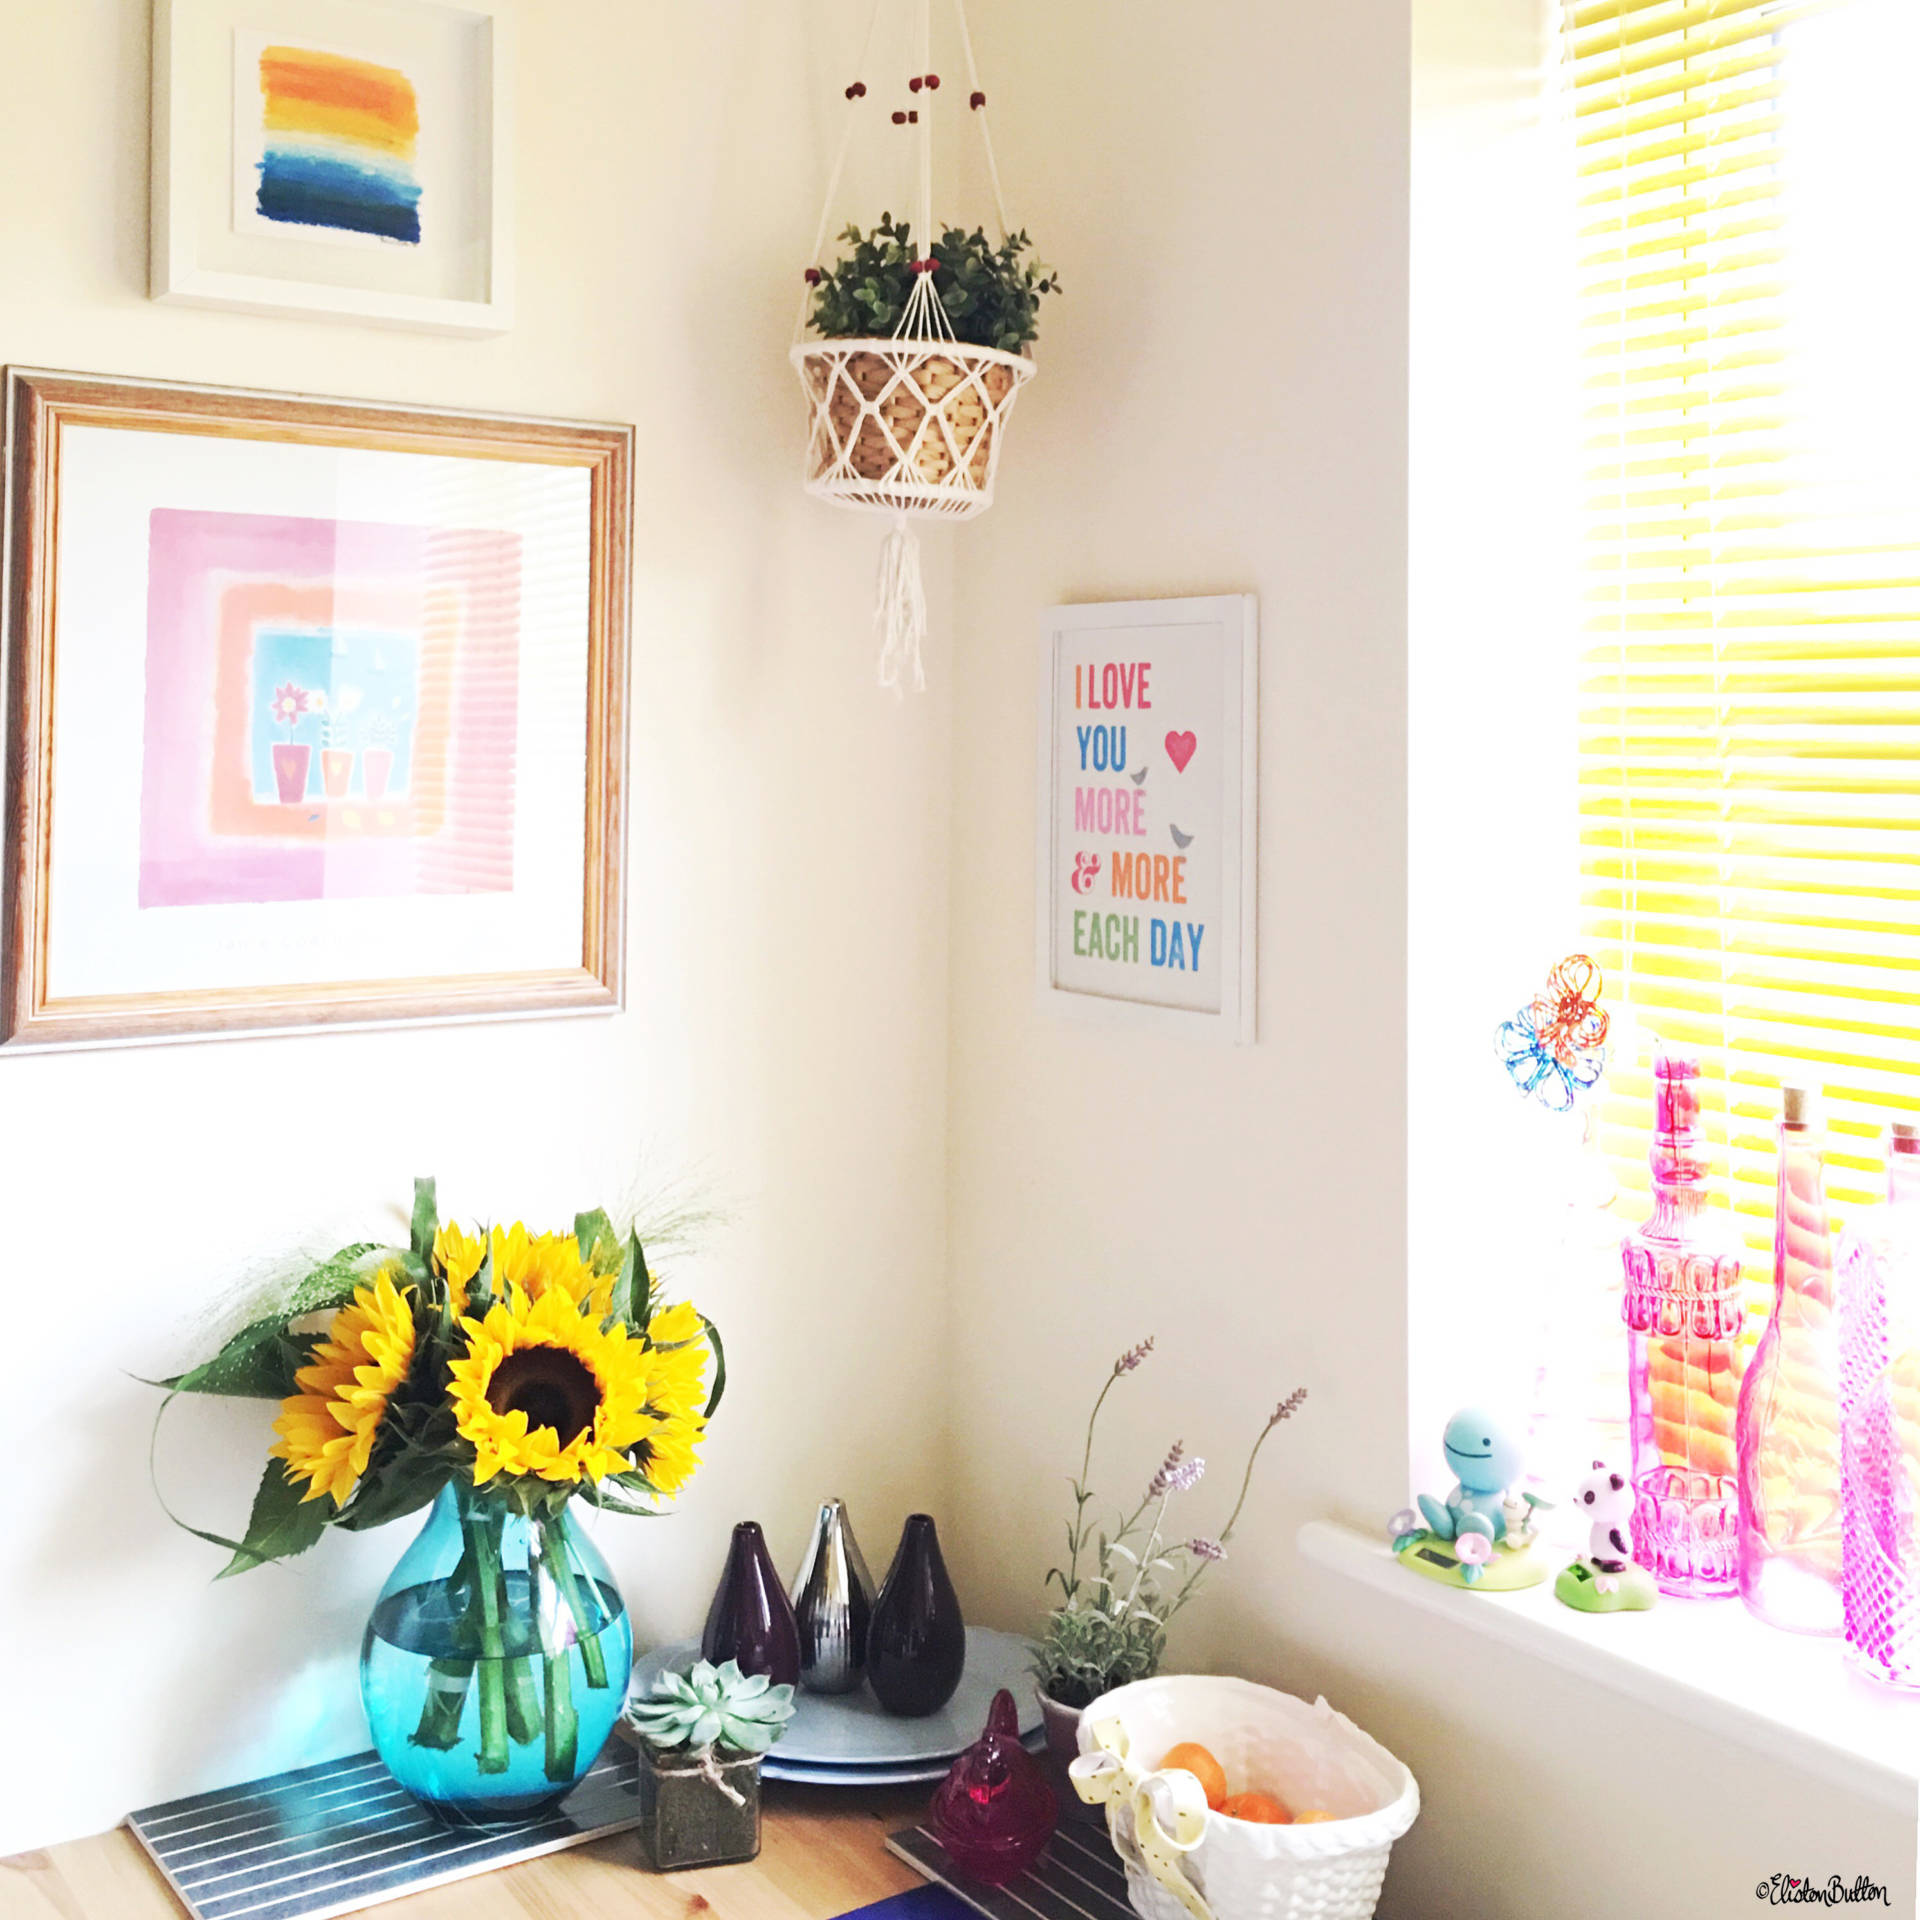 Sunny Kitchen Dining Area with Sunflowers - Around Here…September 2016 at www.elistonbutton.com - Eliston Button - That Crafty Kid – Art, Design, Craft & Adventure.